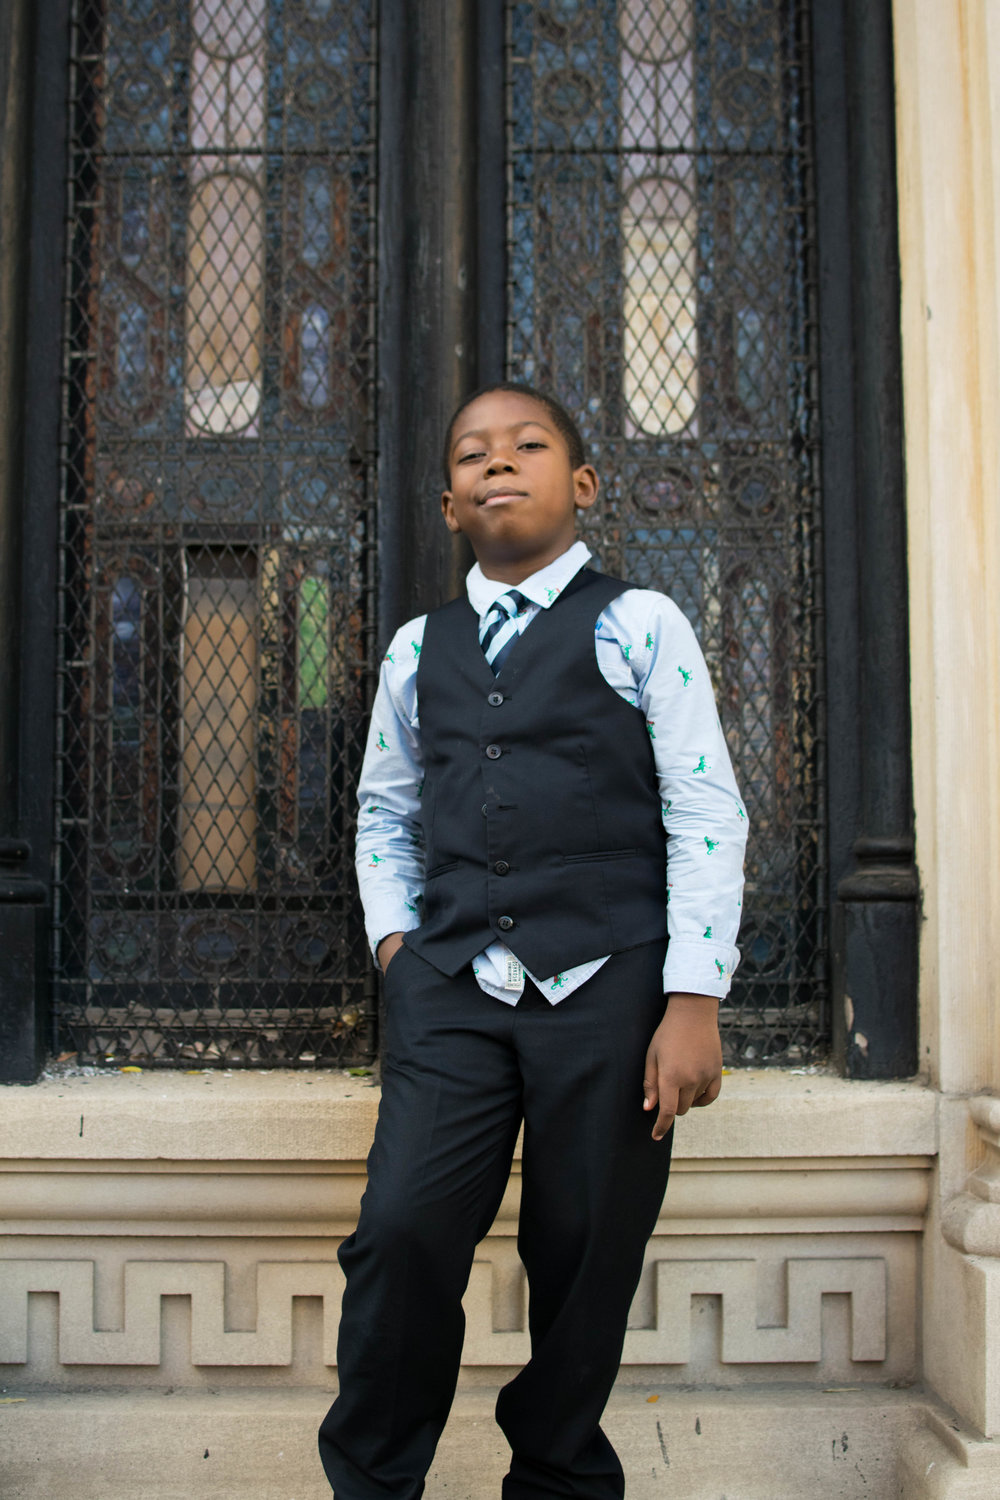 A young boy who attends Hebron French Speaking Seventh-Day Adventist Church on Dean & Nostrand